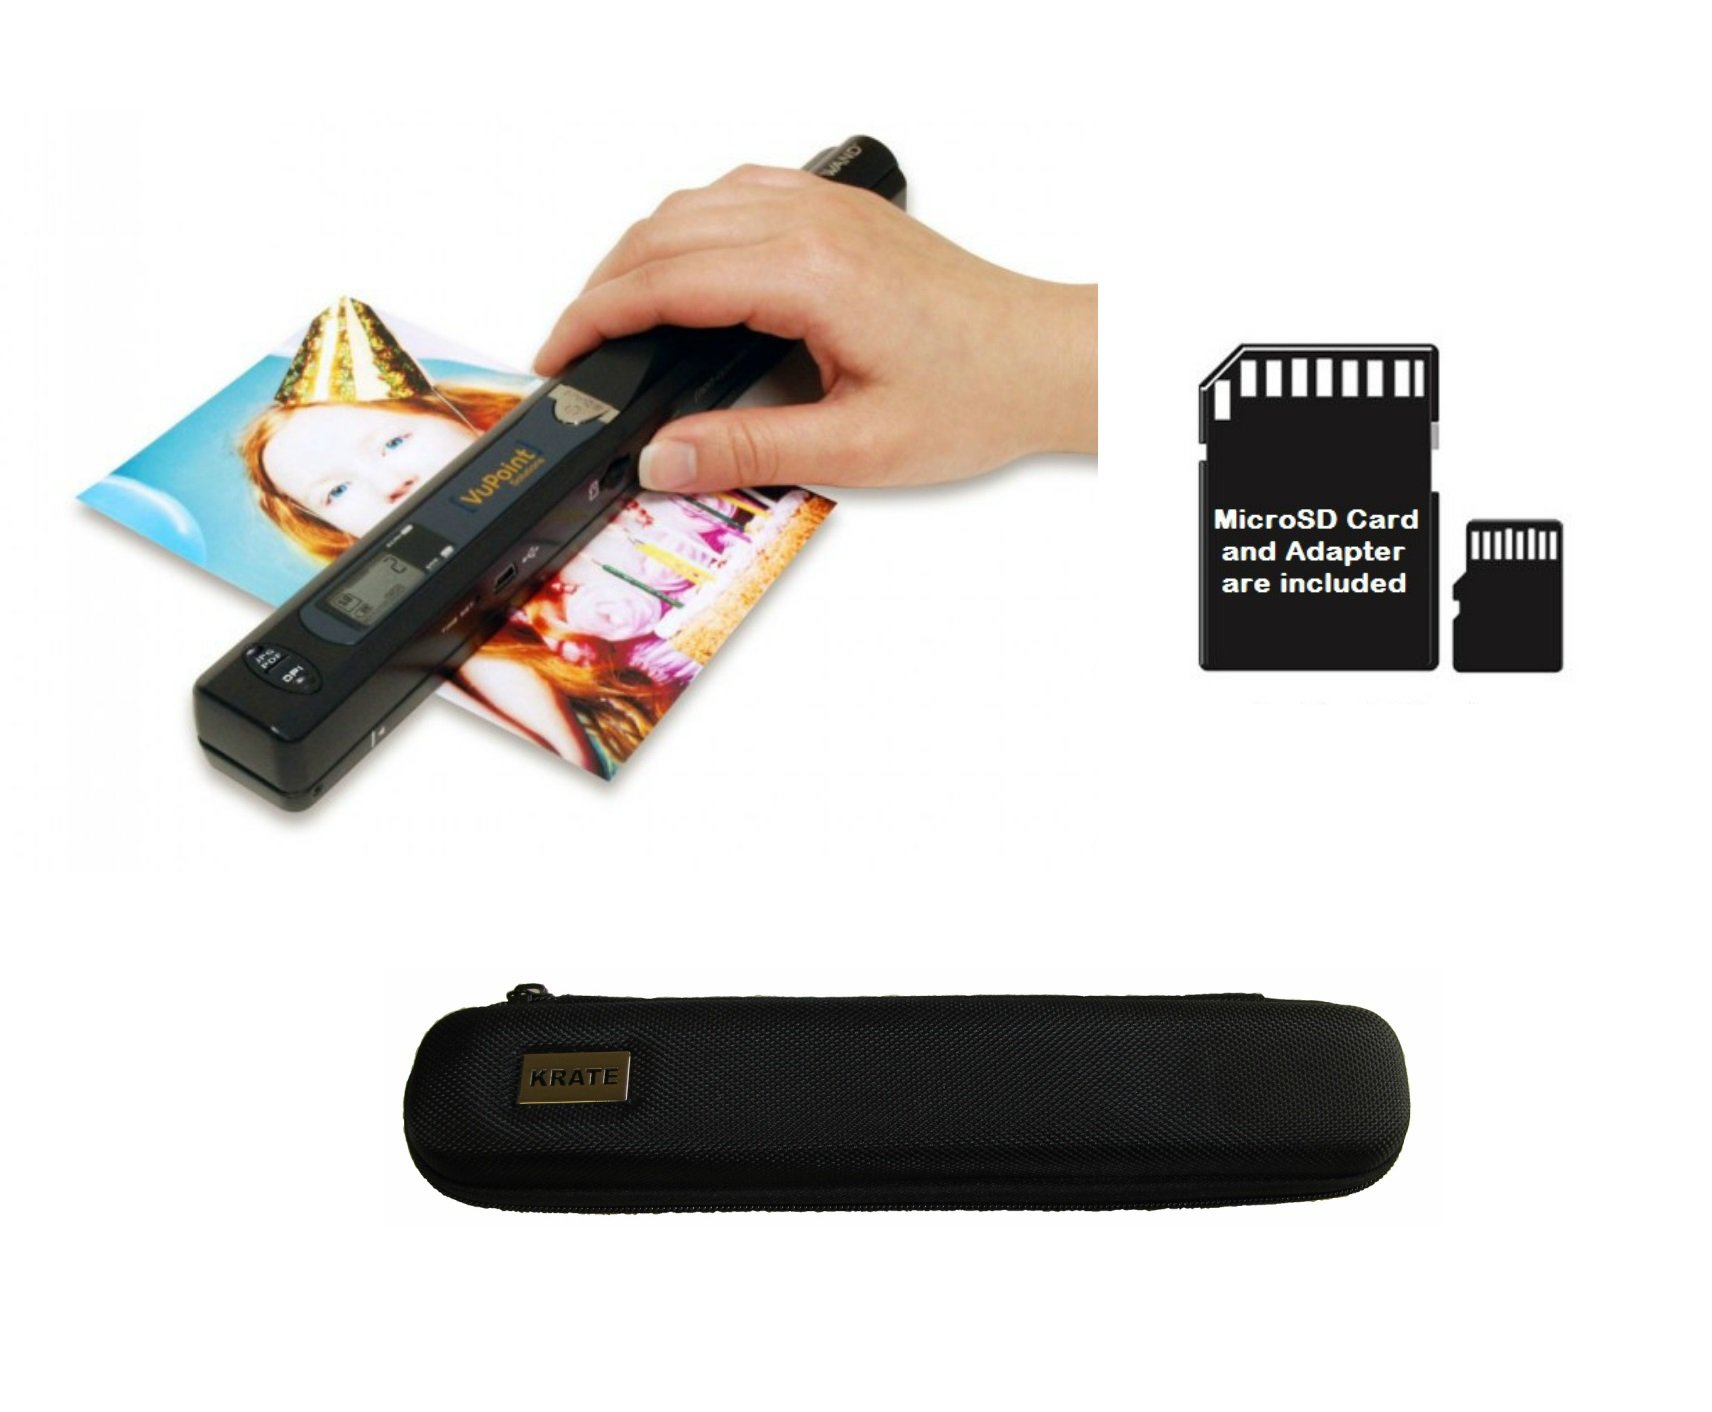 Magic Wand VuPoint Portable Scanner with Carrying Case & 4GB MicroSD Card